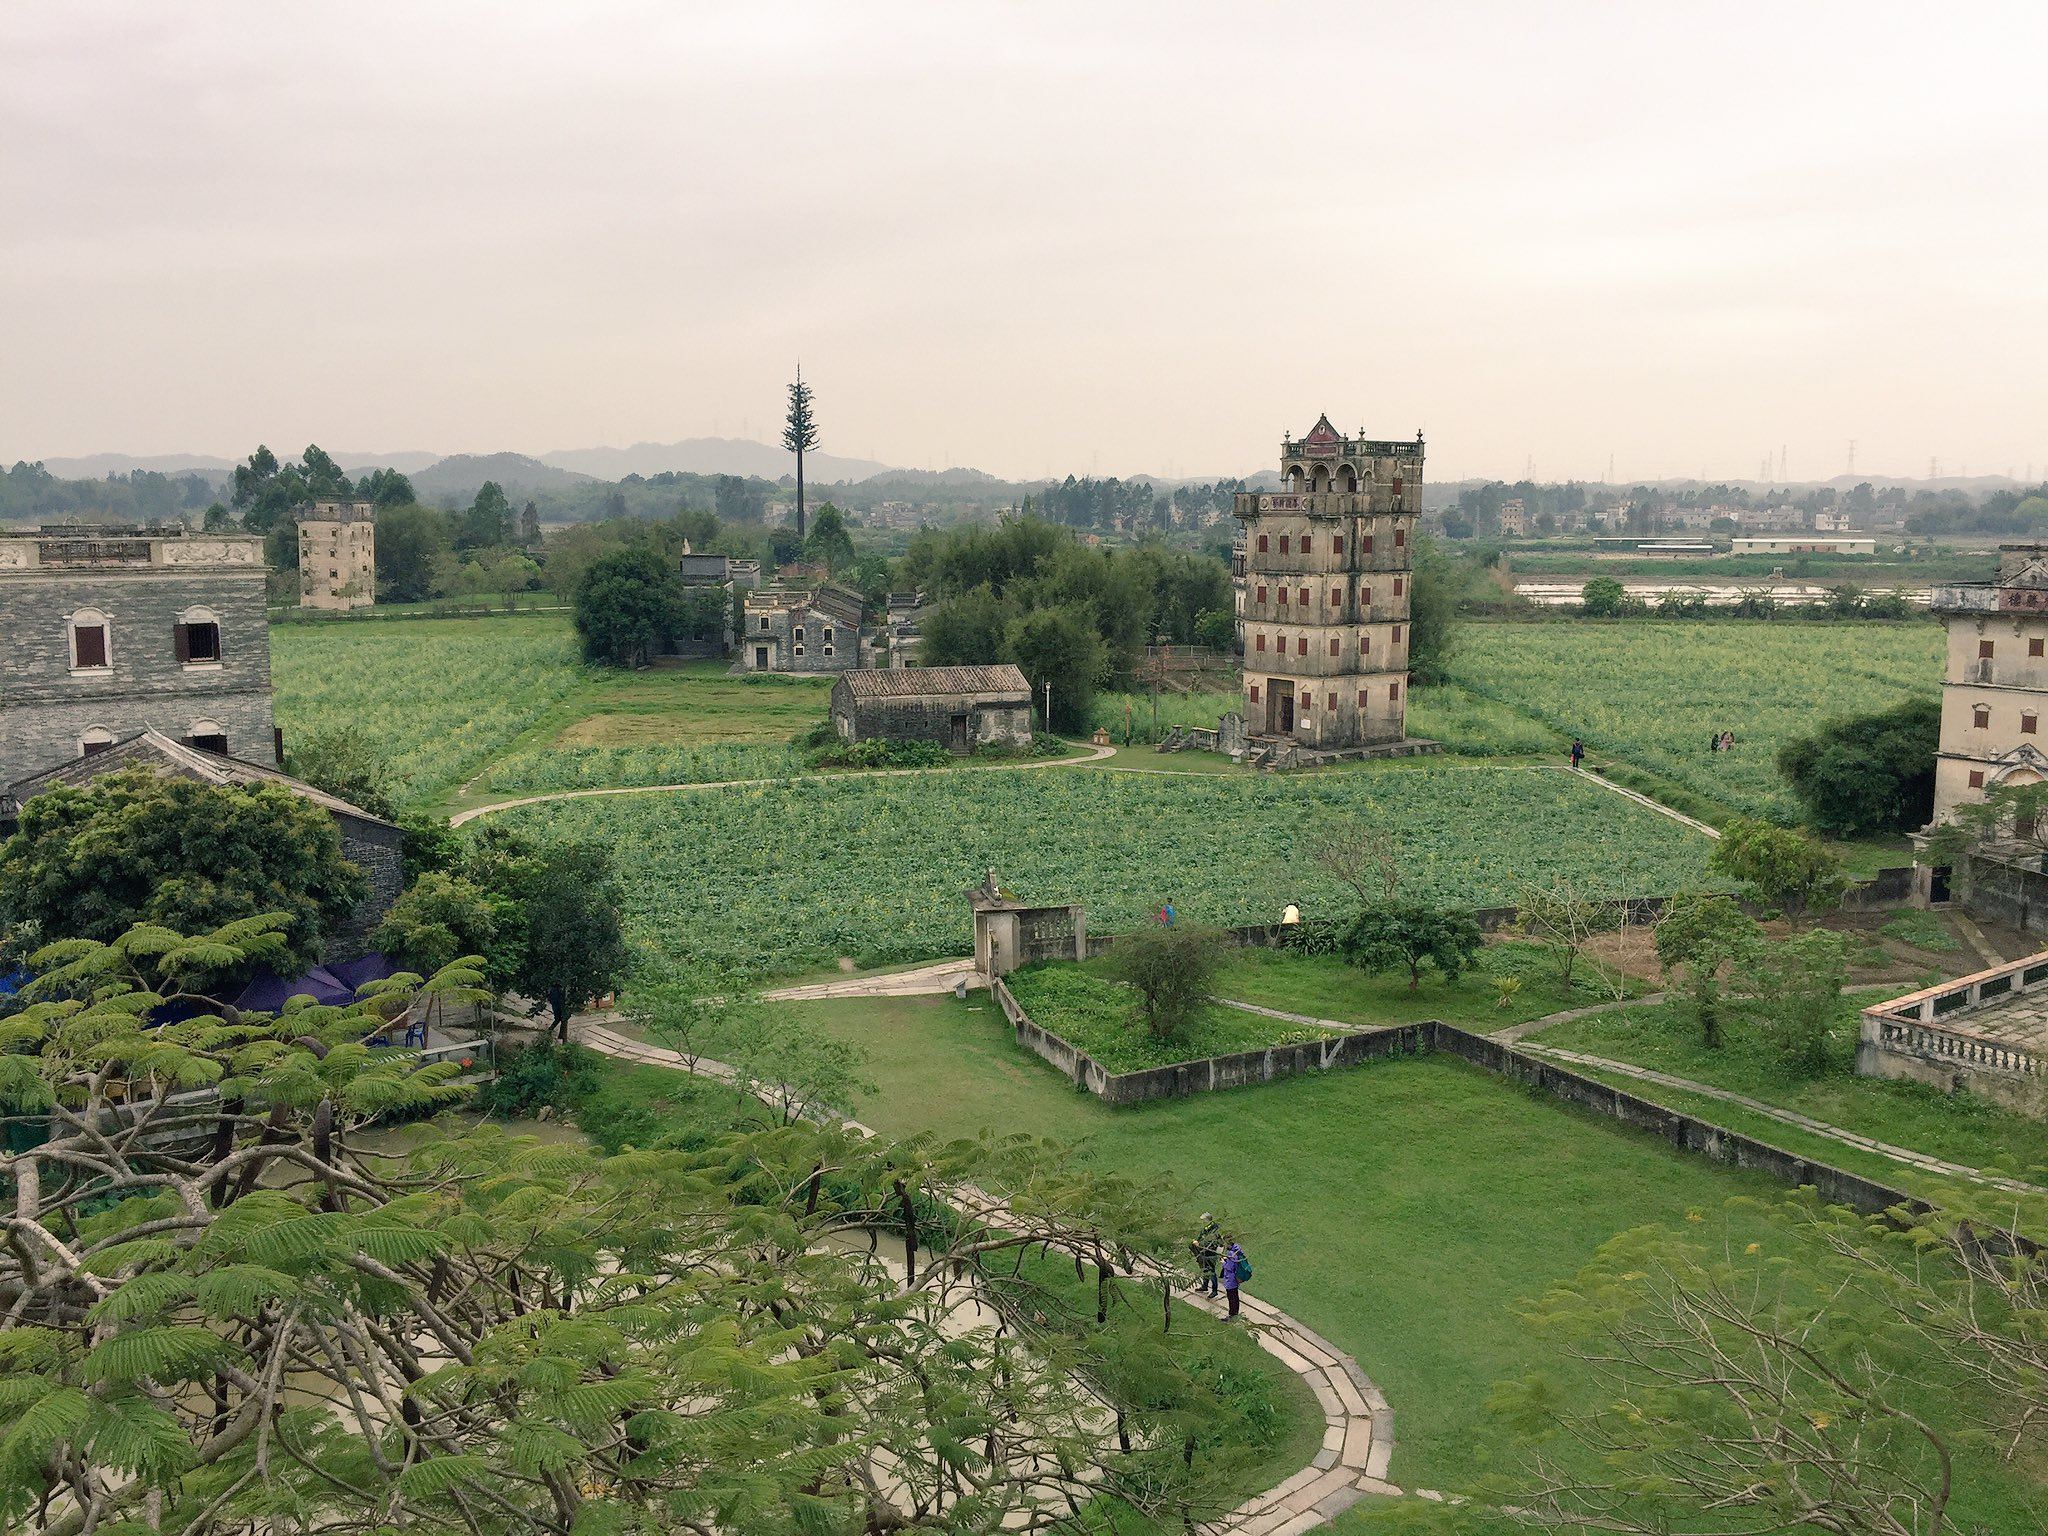 View from the top of Mingshilou, Zili, Kaiping. #cahht17 https://t.co/B2Yb4AgNnK